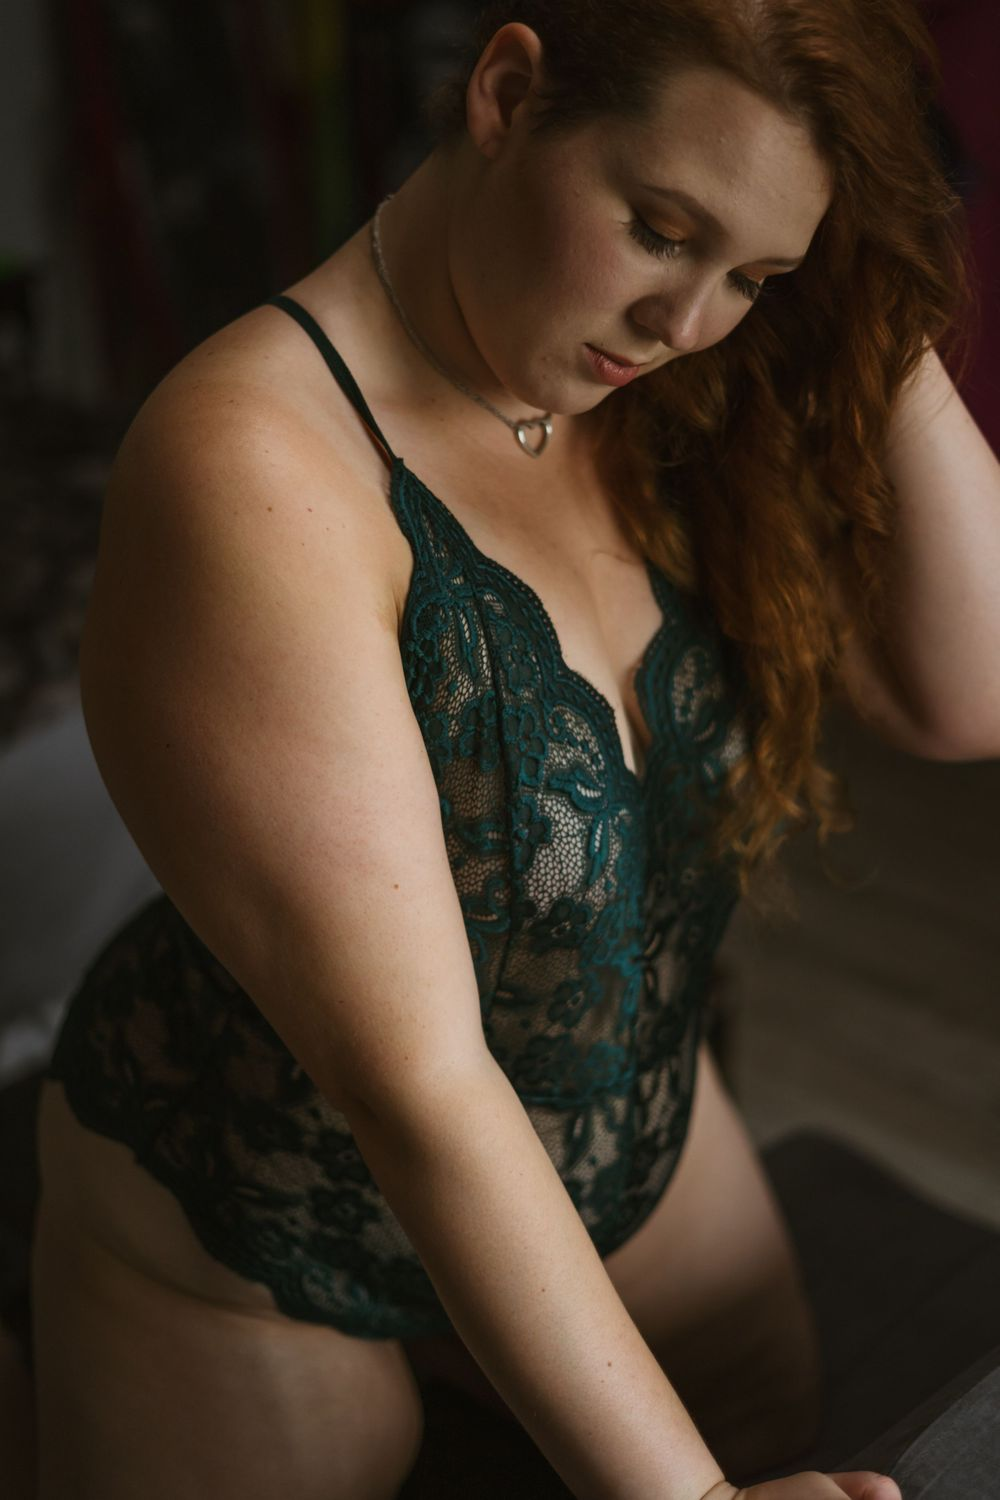 plus size woman with red hair and light skin looks down at the couch she is kneeling on. She is wearing a green bodysuit